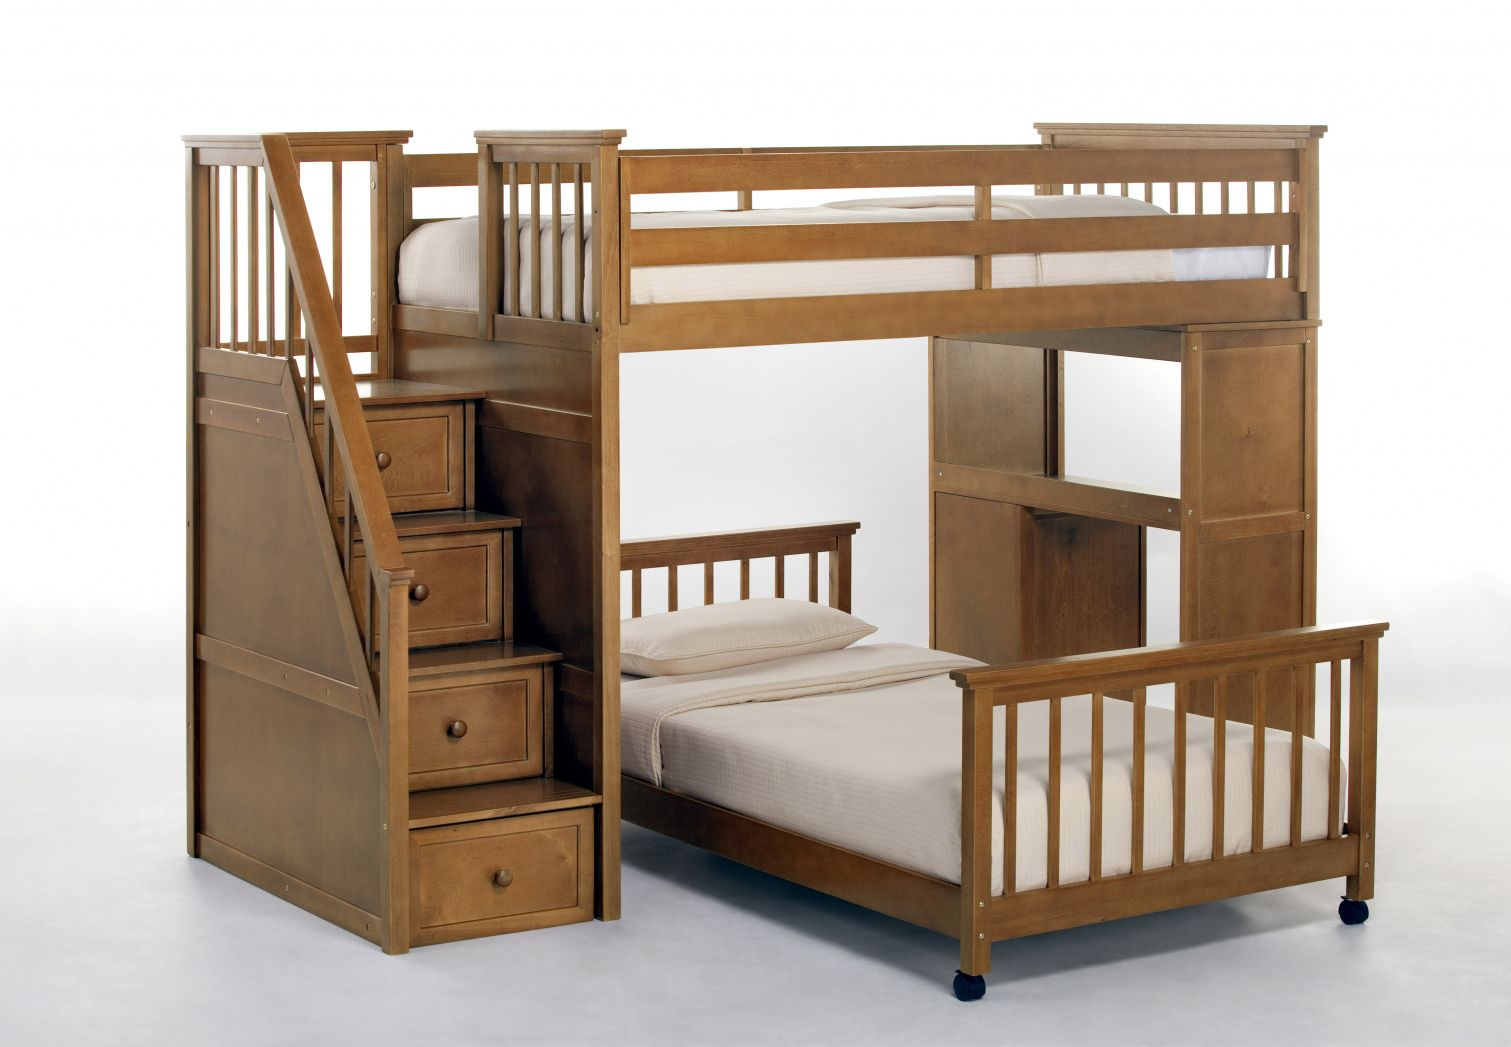 Loft bed twin over queen  Kmart Bunk Beds for Kids  Modern Interior Paint Colors Check more